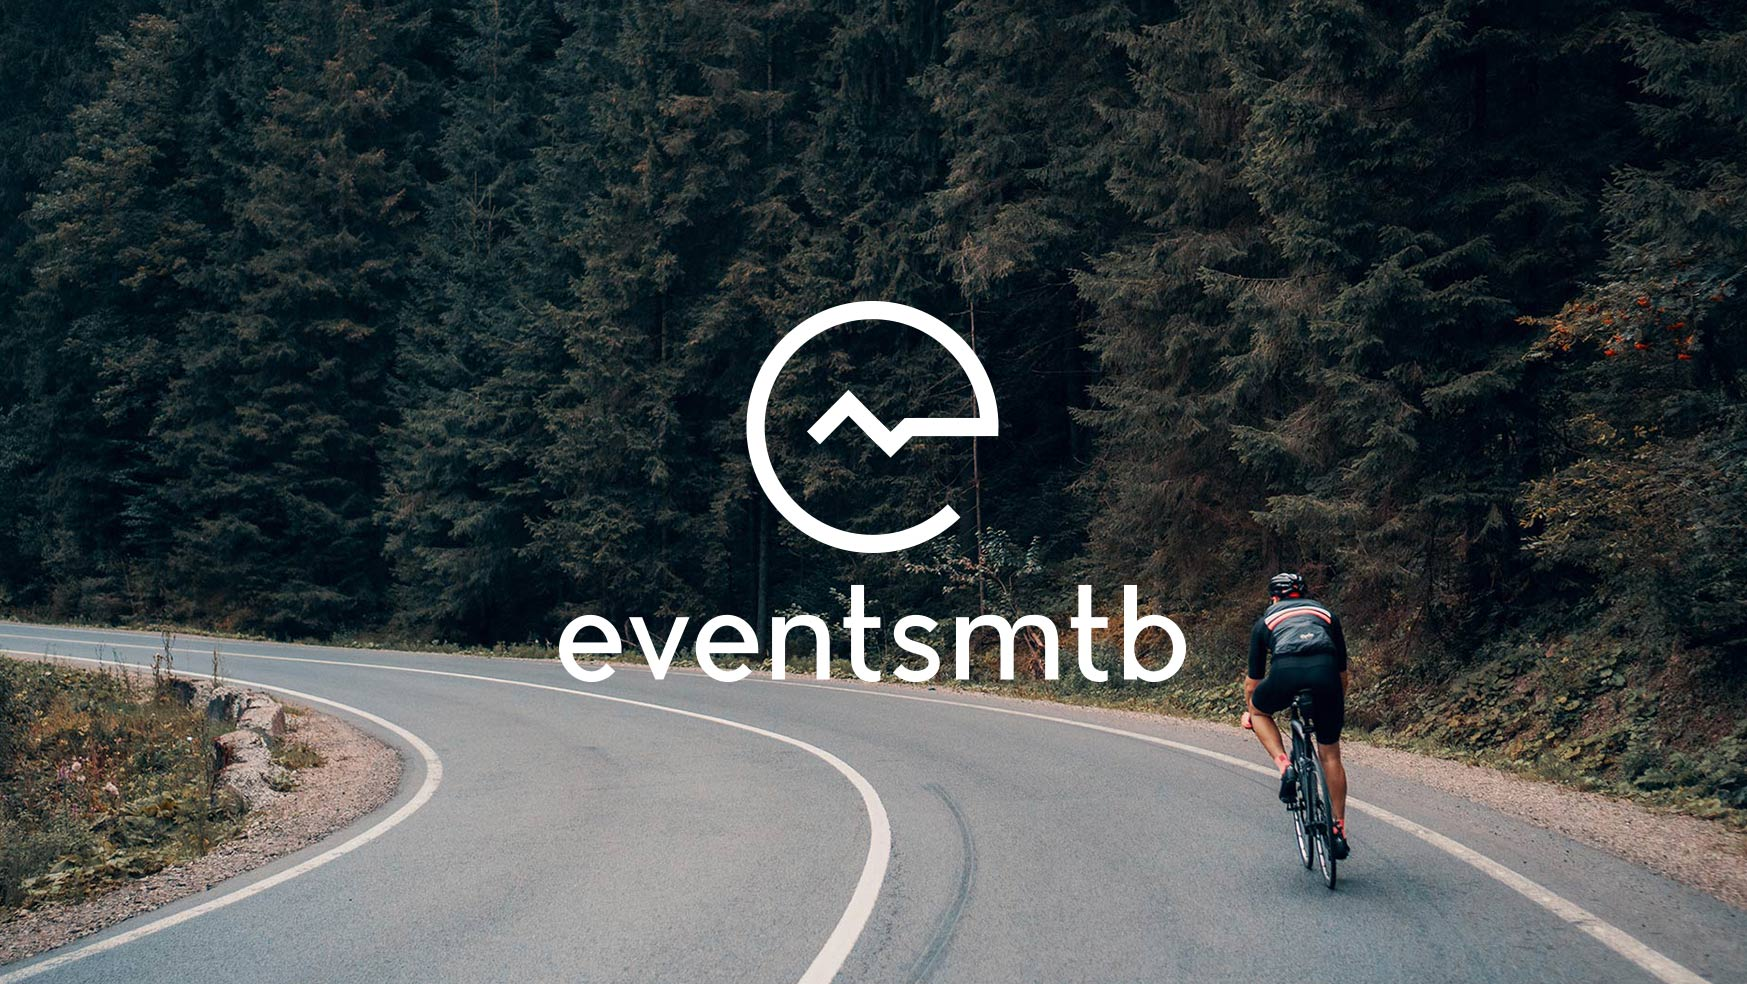 eventsmtb desenvolvimento do Branding, web design, marketing digital